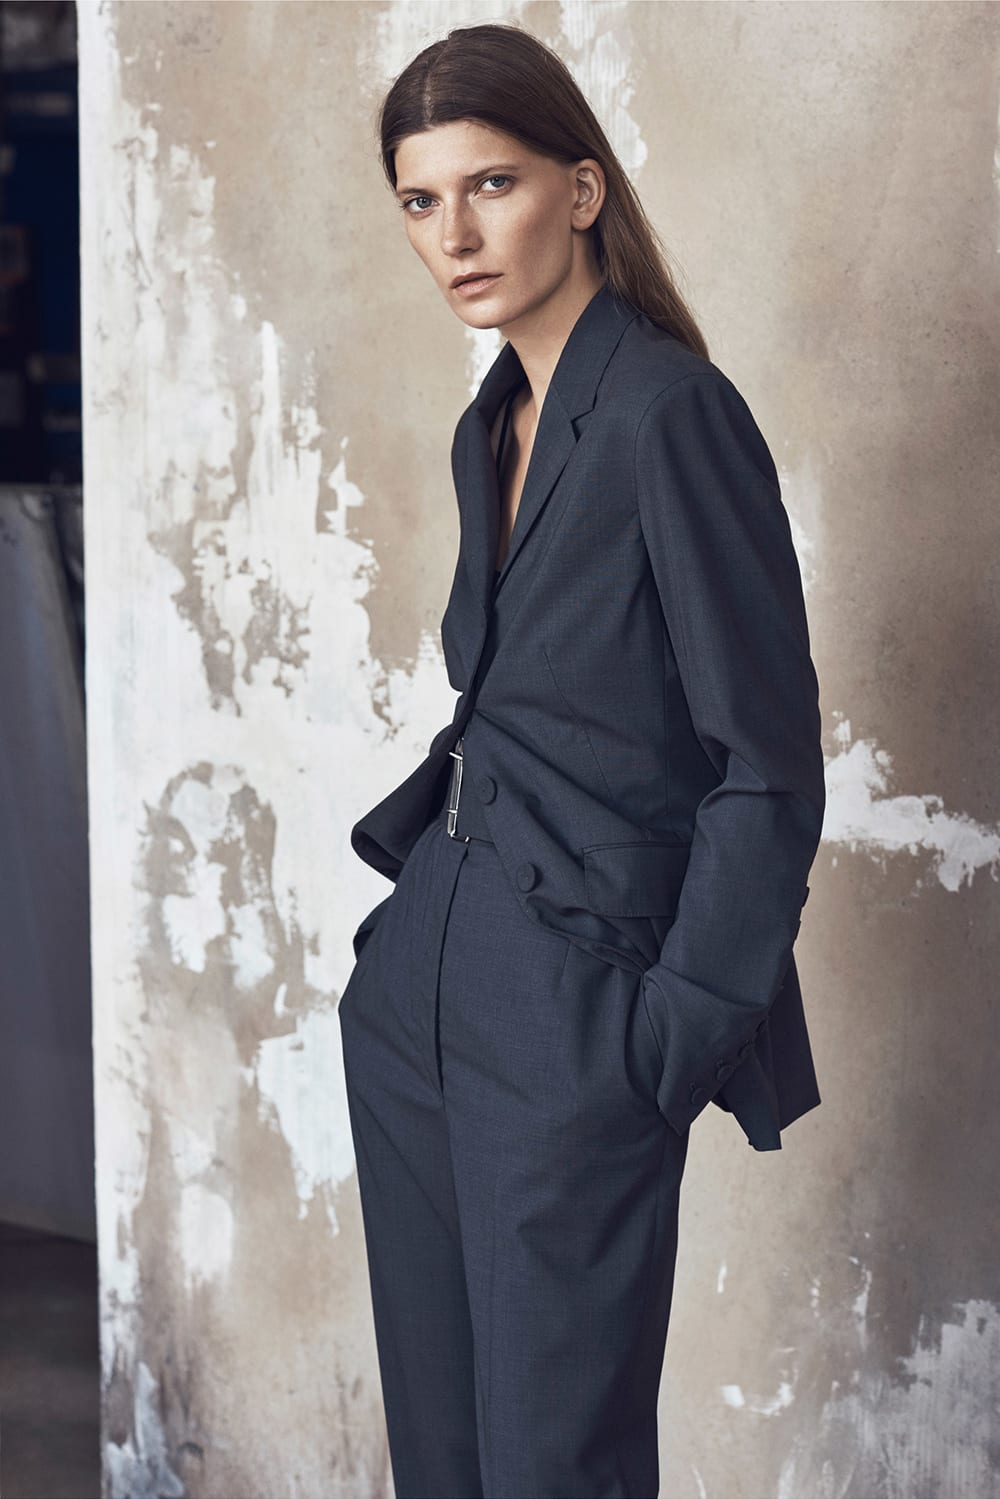 Style&Minimalism | Collections | The Row Resort '16 | Look 11